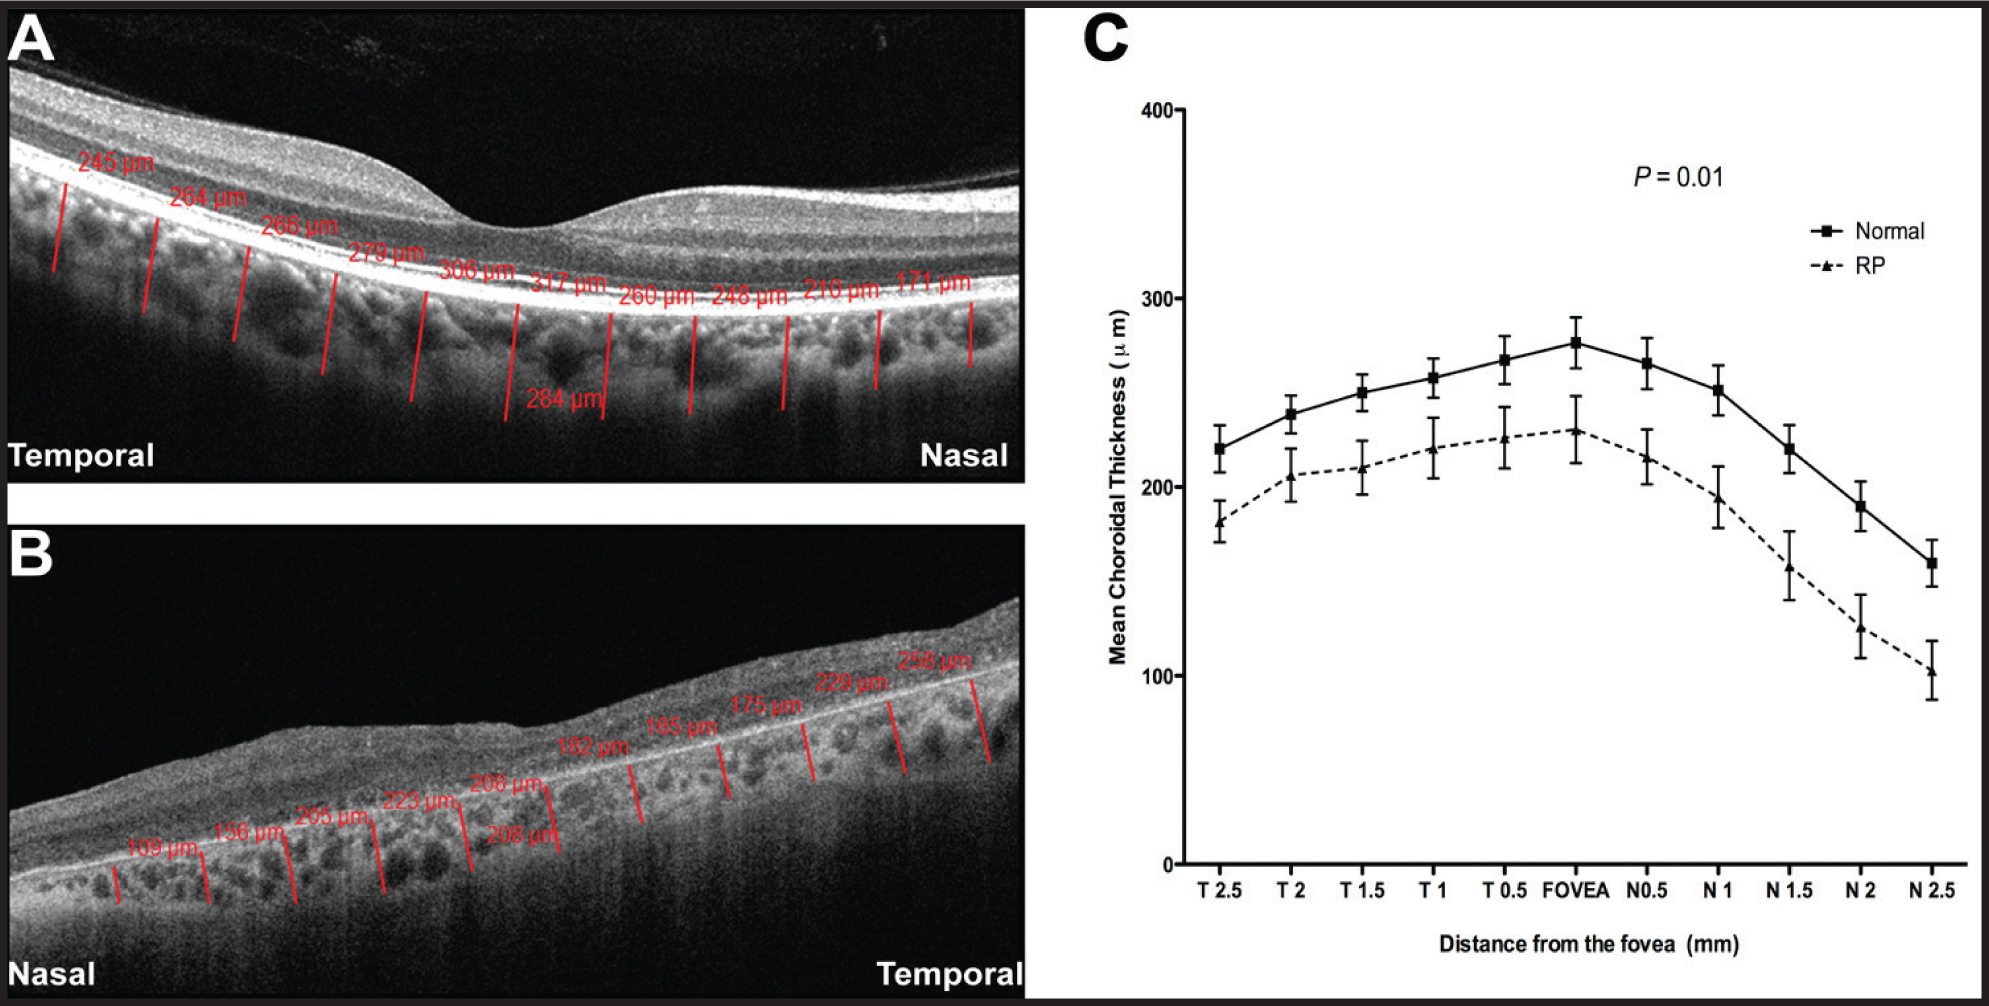 Choroidal thickness measurements. Representative OCT image of a healthy eye (A) and an eye with retinitis pigmentosa (B) showing choroidal thickness measurements using the Cirrus linear measurement tool at 11 locations (red lines and numbers). (C) Graph of the mean choroidal thickness, showing thinning of the choroid at all locations in eyes with RP, when compared to healthy eyes. P value represents the results of Mann-Whitney test. T = temporal; N = nasal.